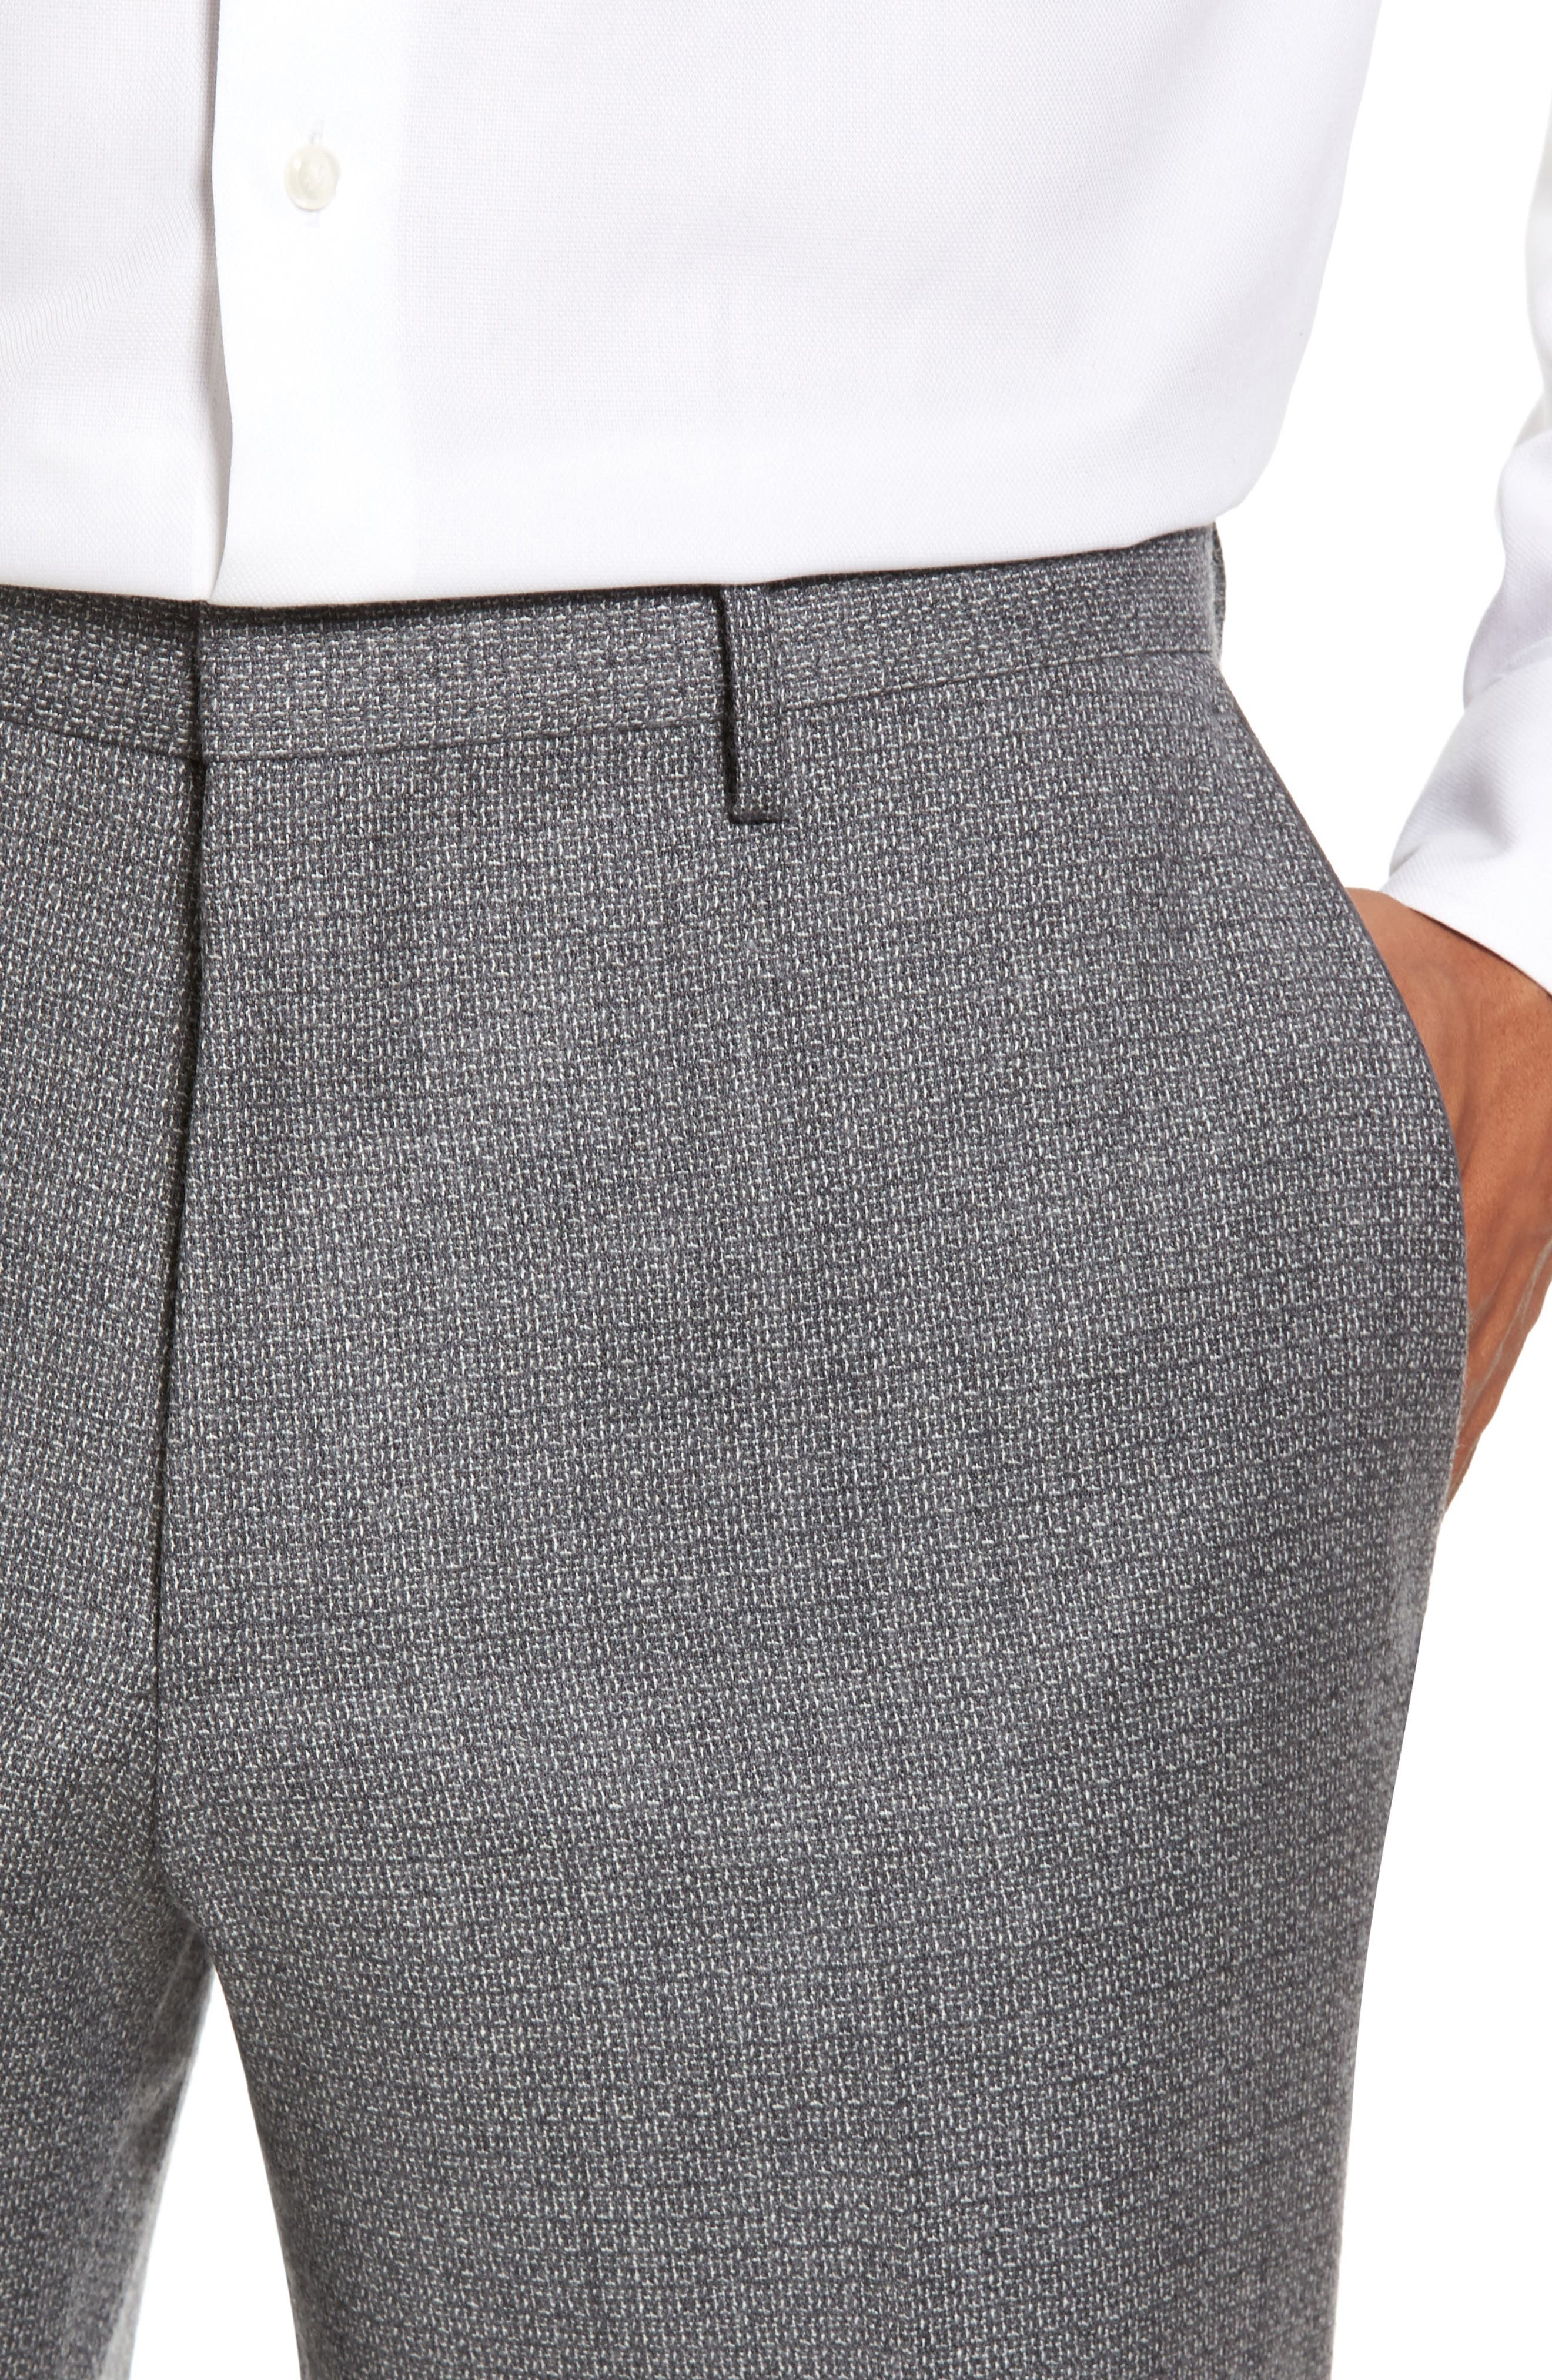 Giro Flat Front Solid Wool Trousers,                             Alternate thumbnail 4, color,                             030